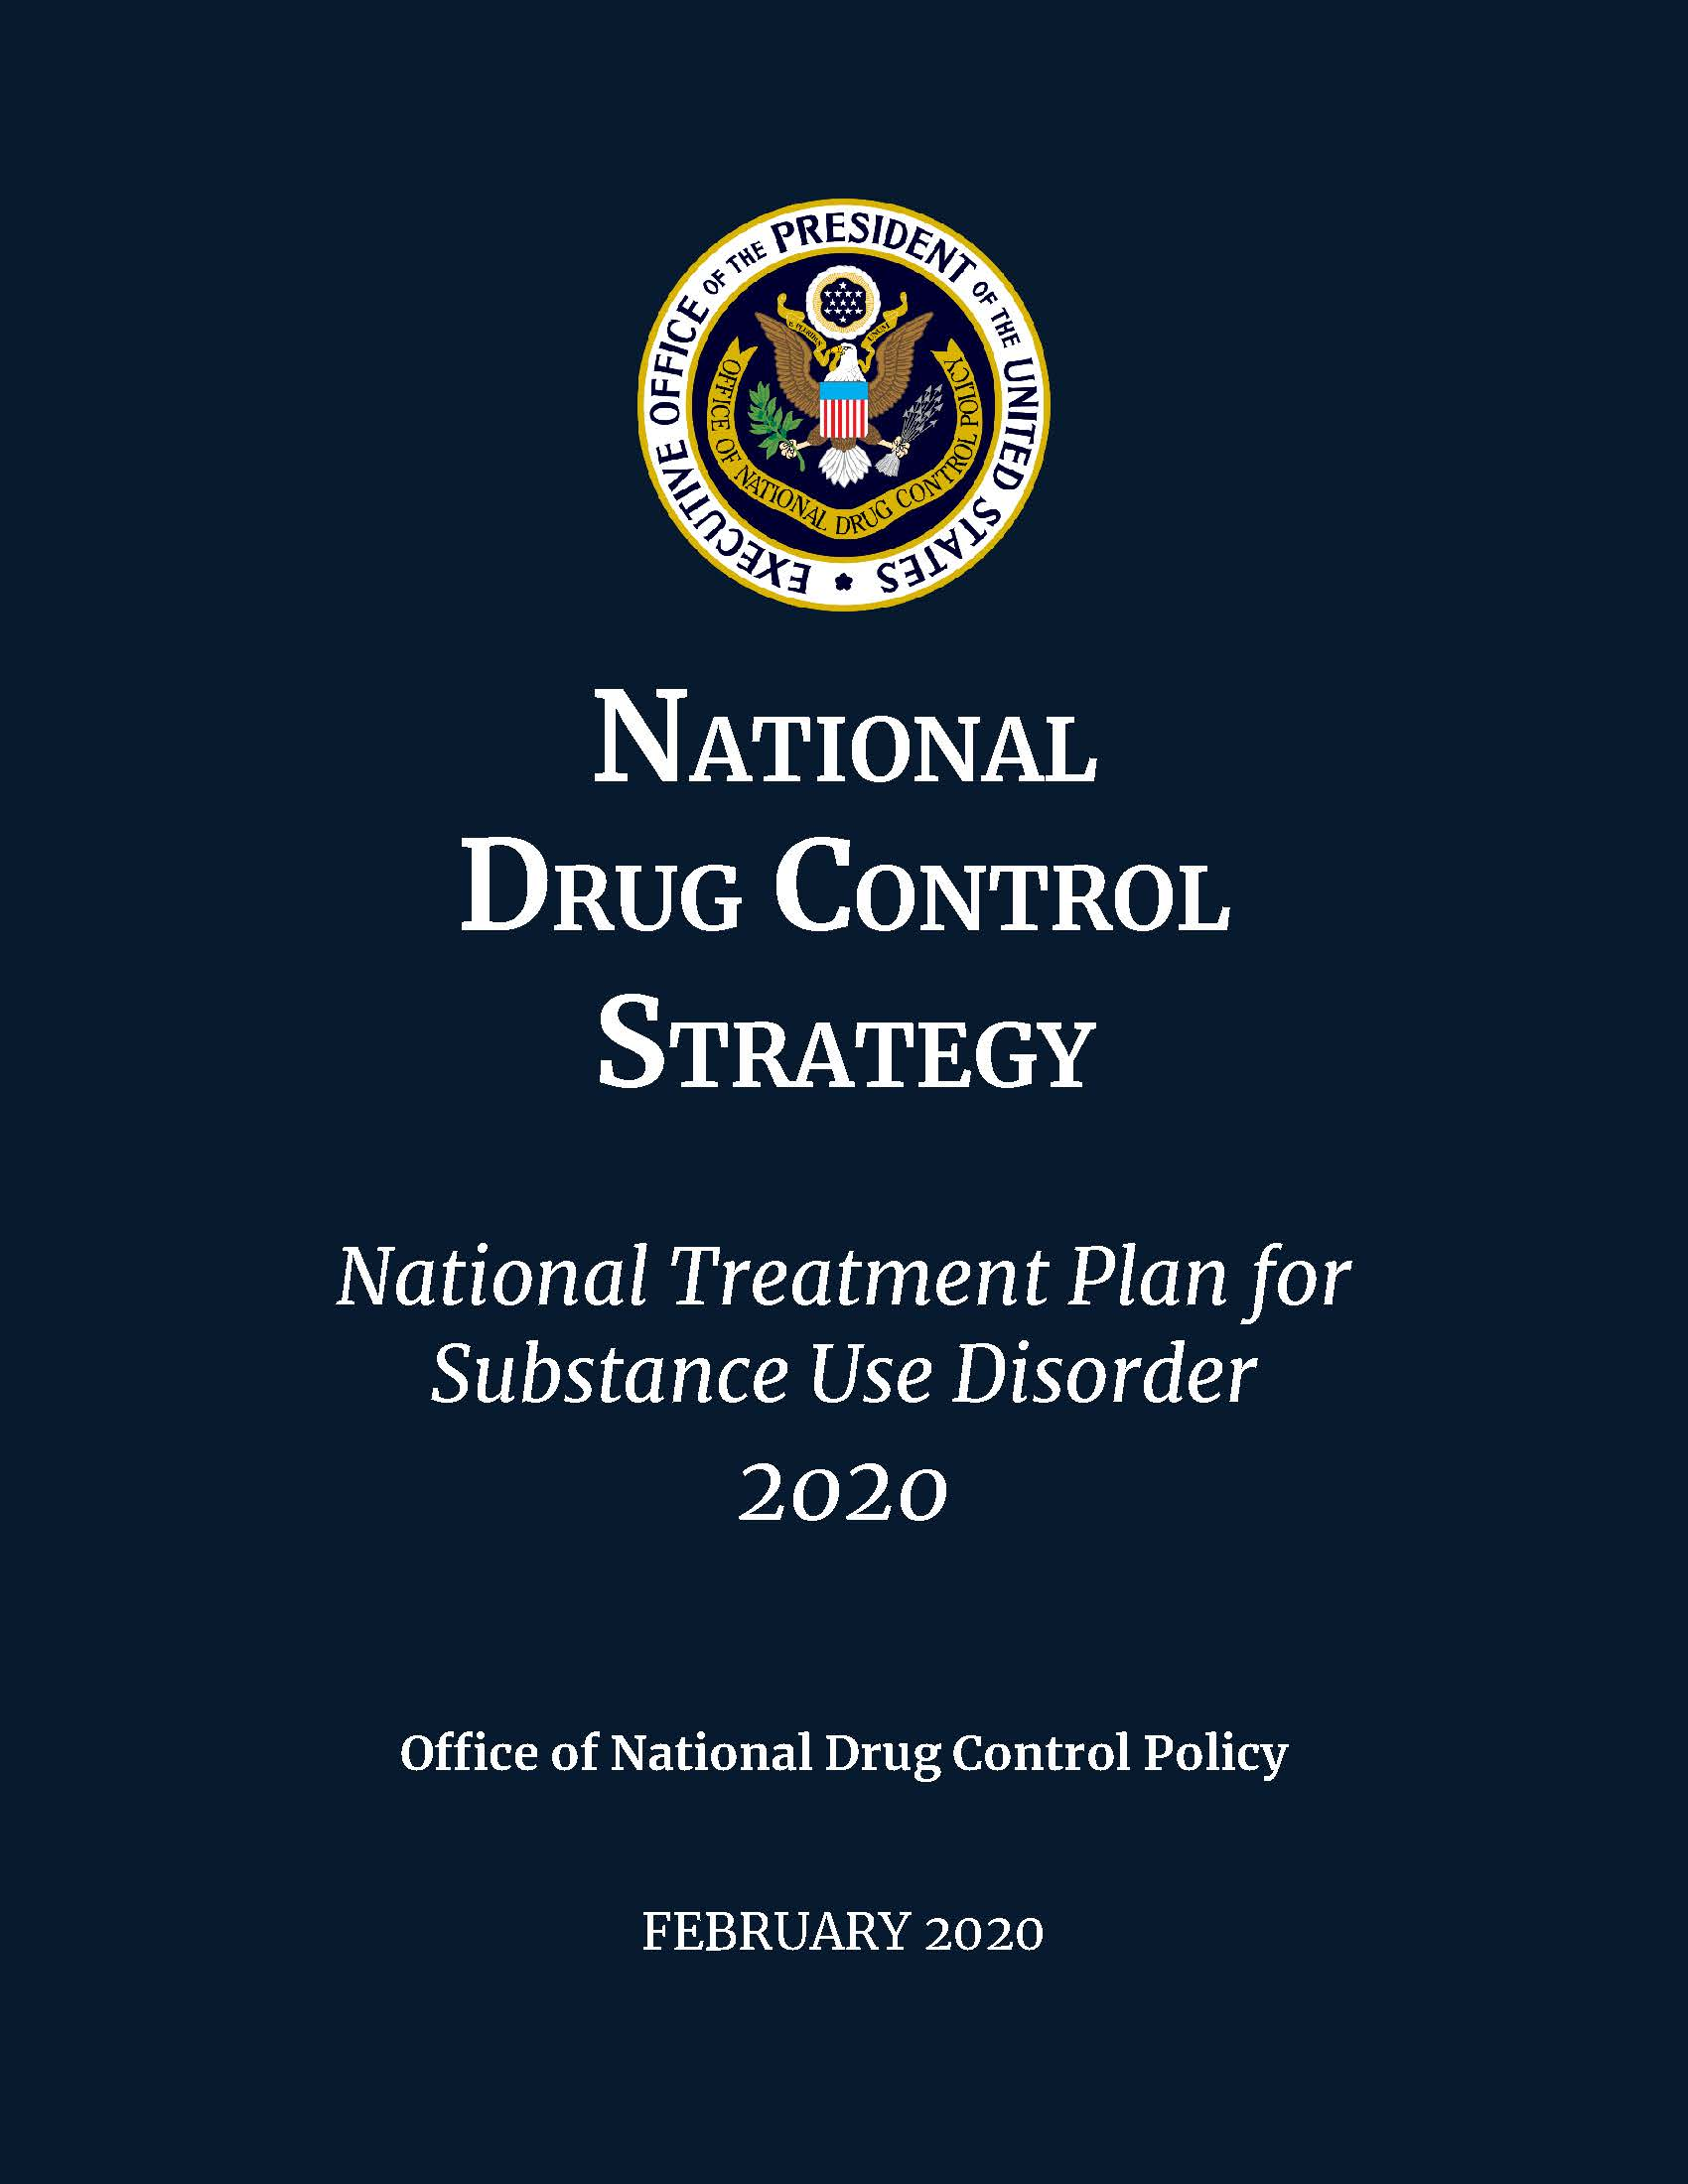 National Drug Control Strategy - Cover